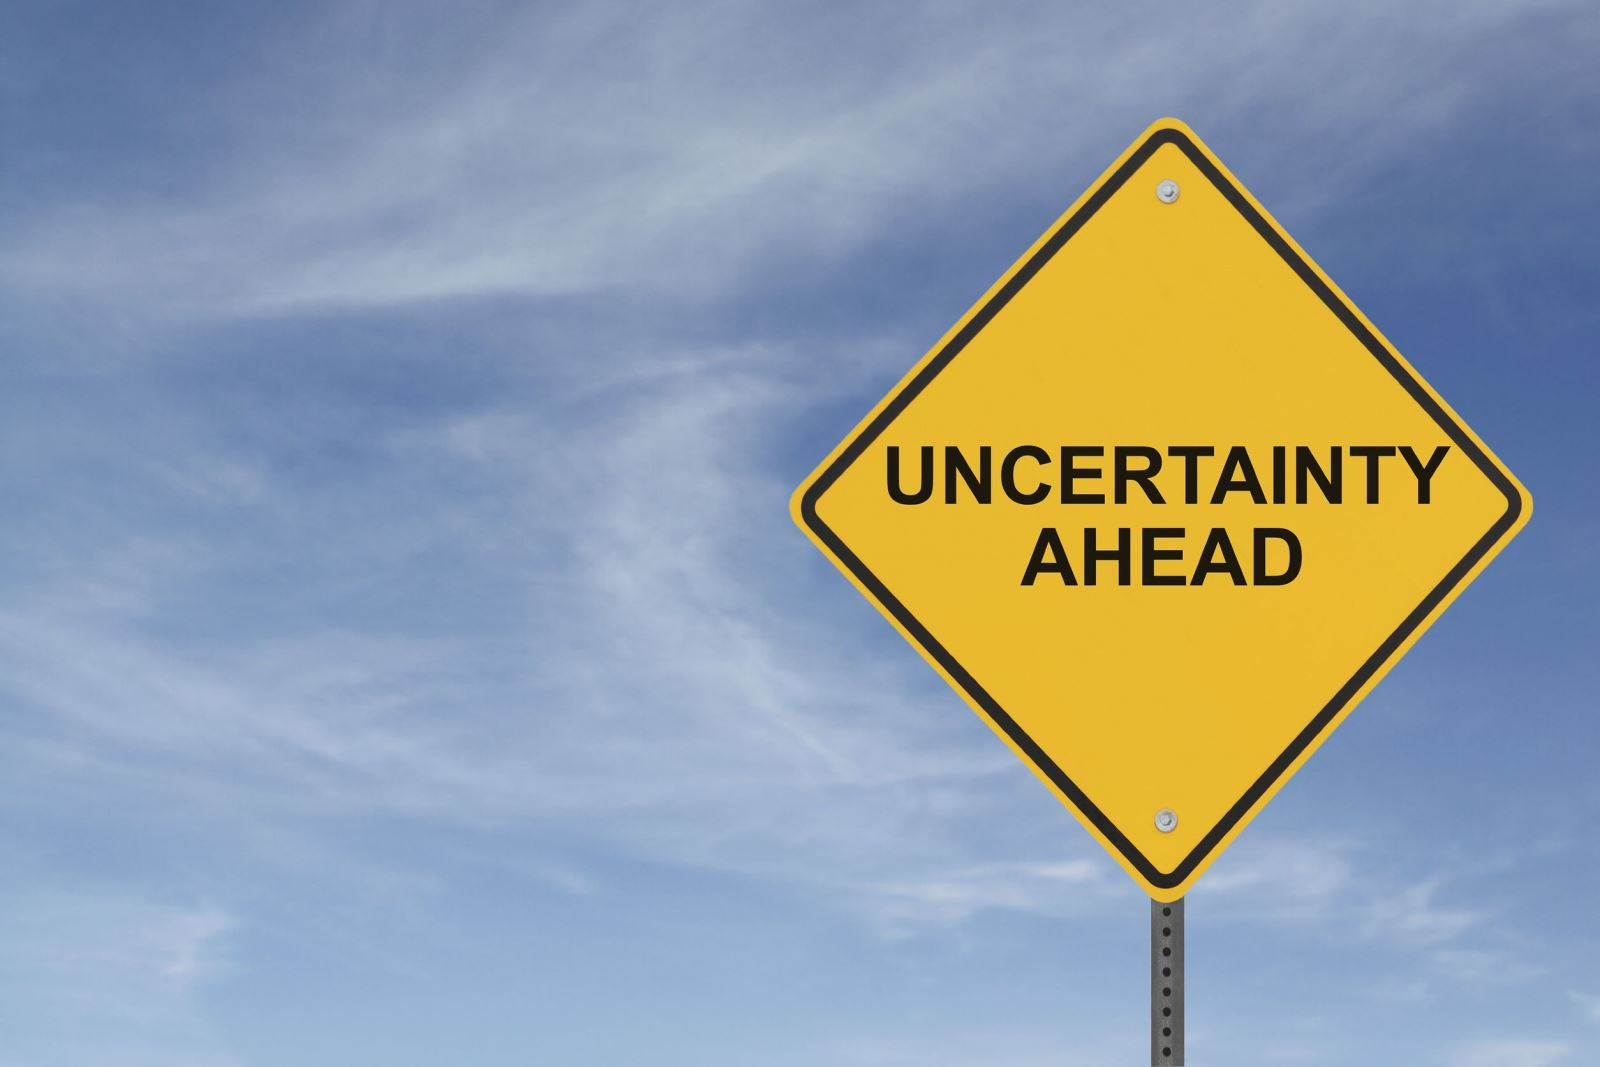 What HR should do during times of uncertainty